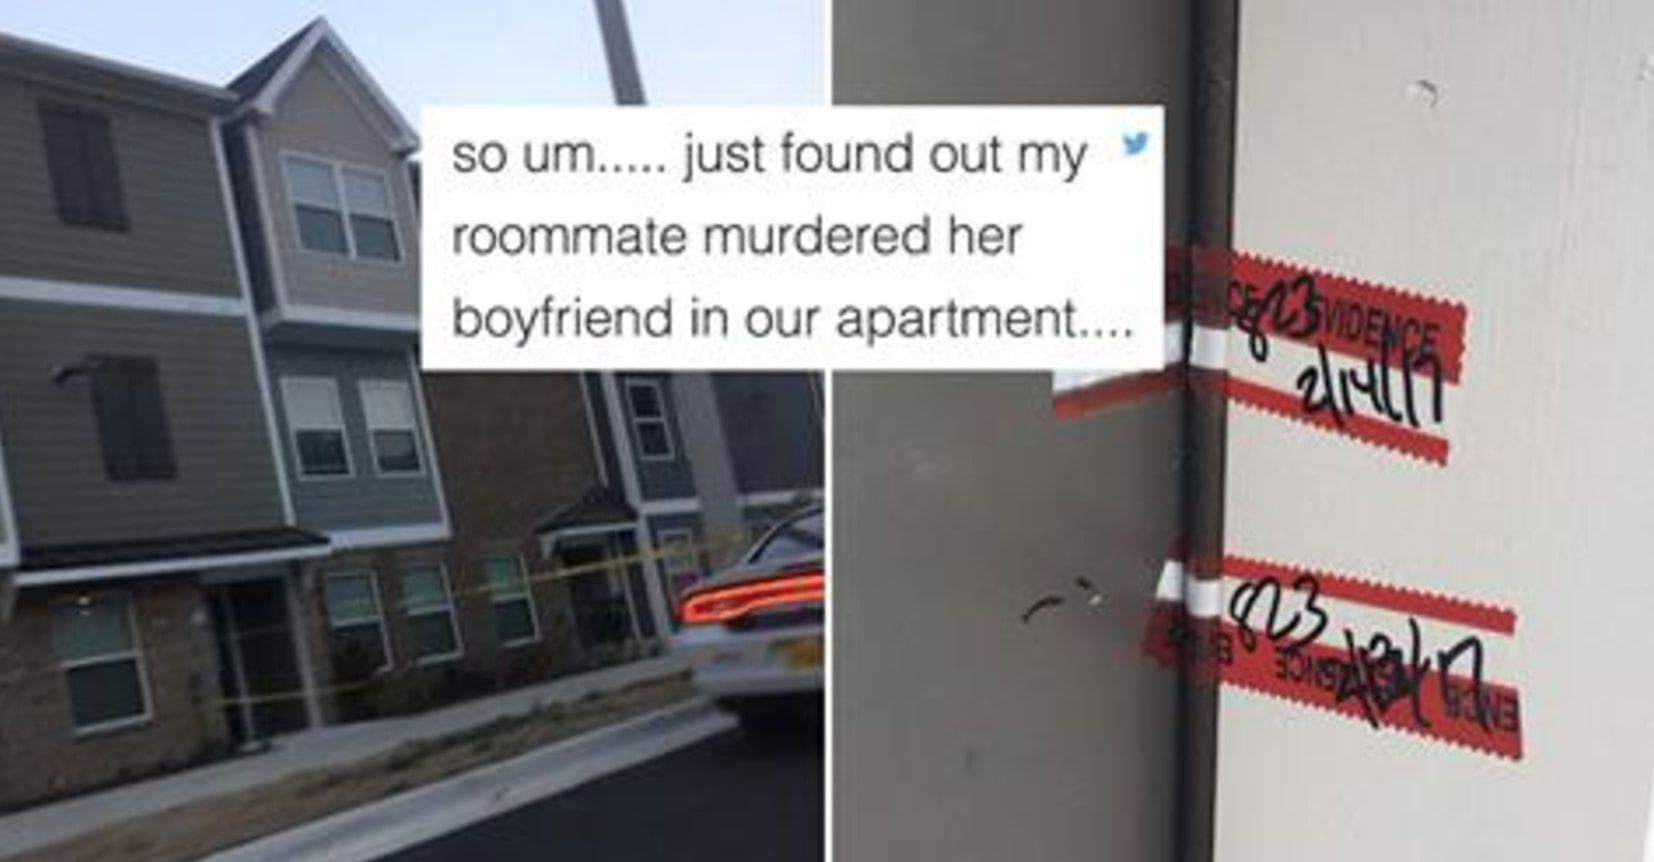 This Guy Found Out His Roommate Murdered Someone In Their Apartment And Live Tweeted The